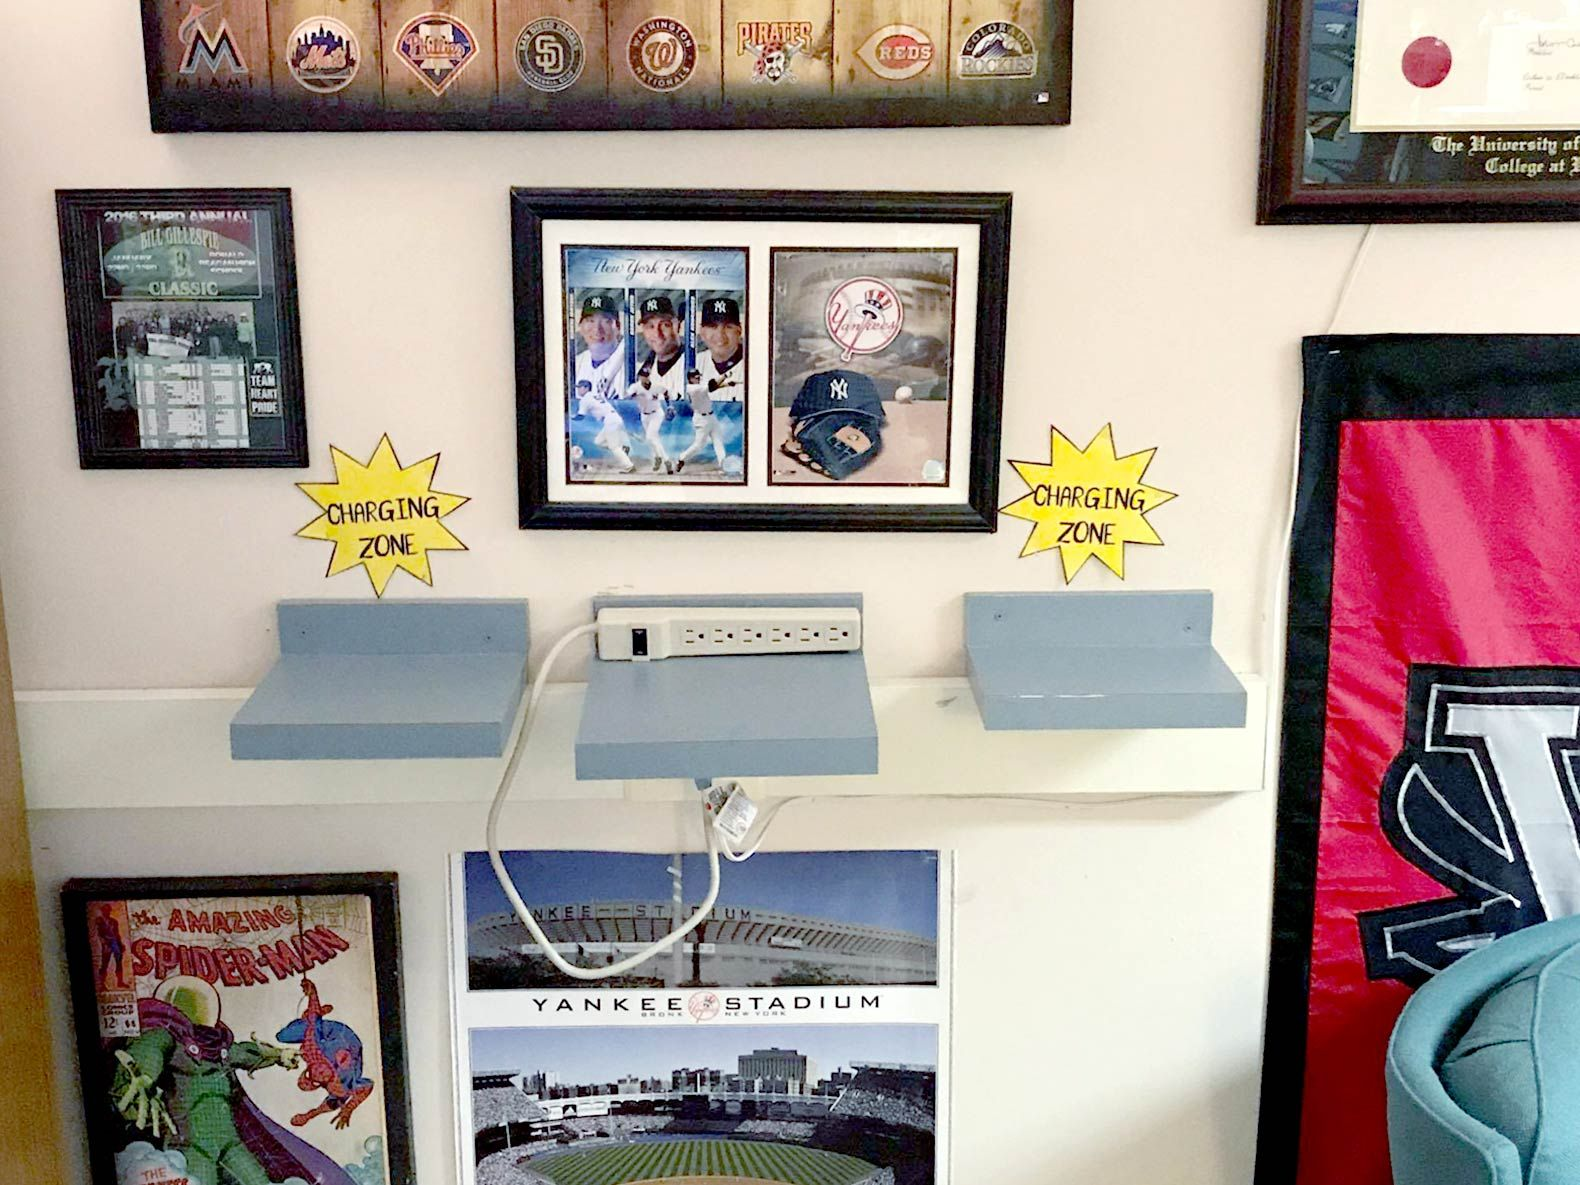 McDaniel set up a charging station for his students' cell phones. A big sports fan, he infuses the room with his personality through sports memorabilia on the walls.